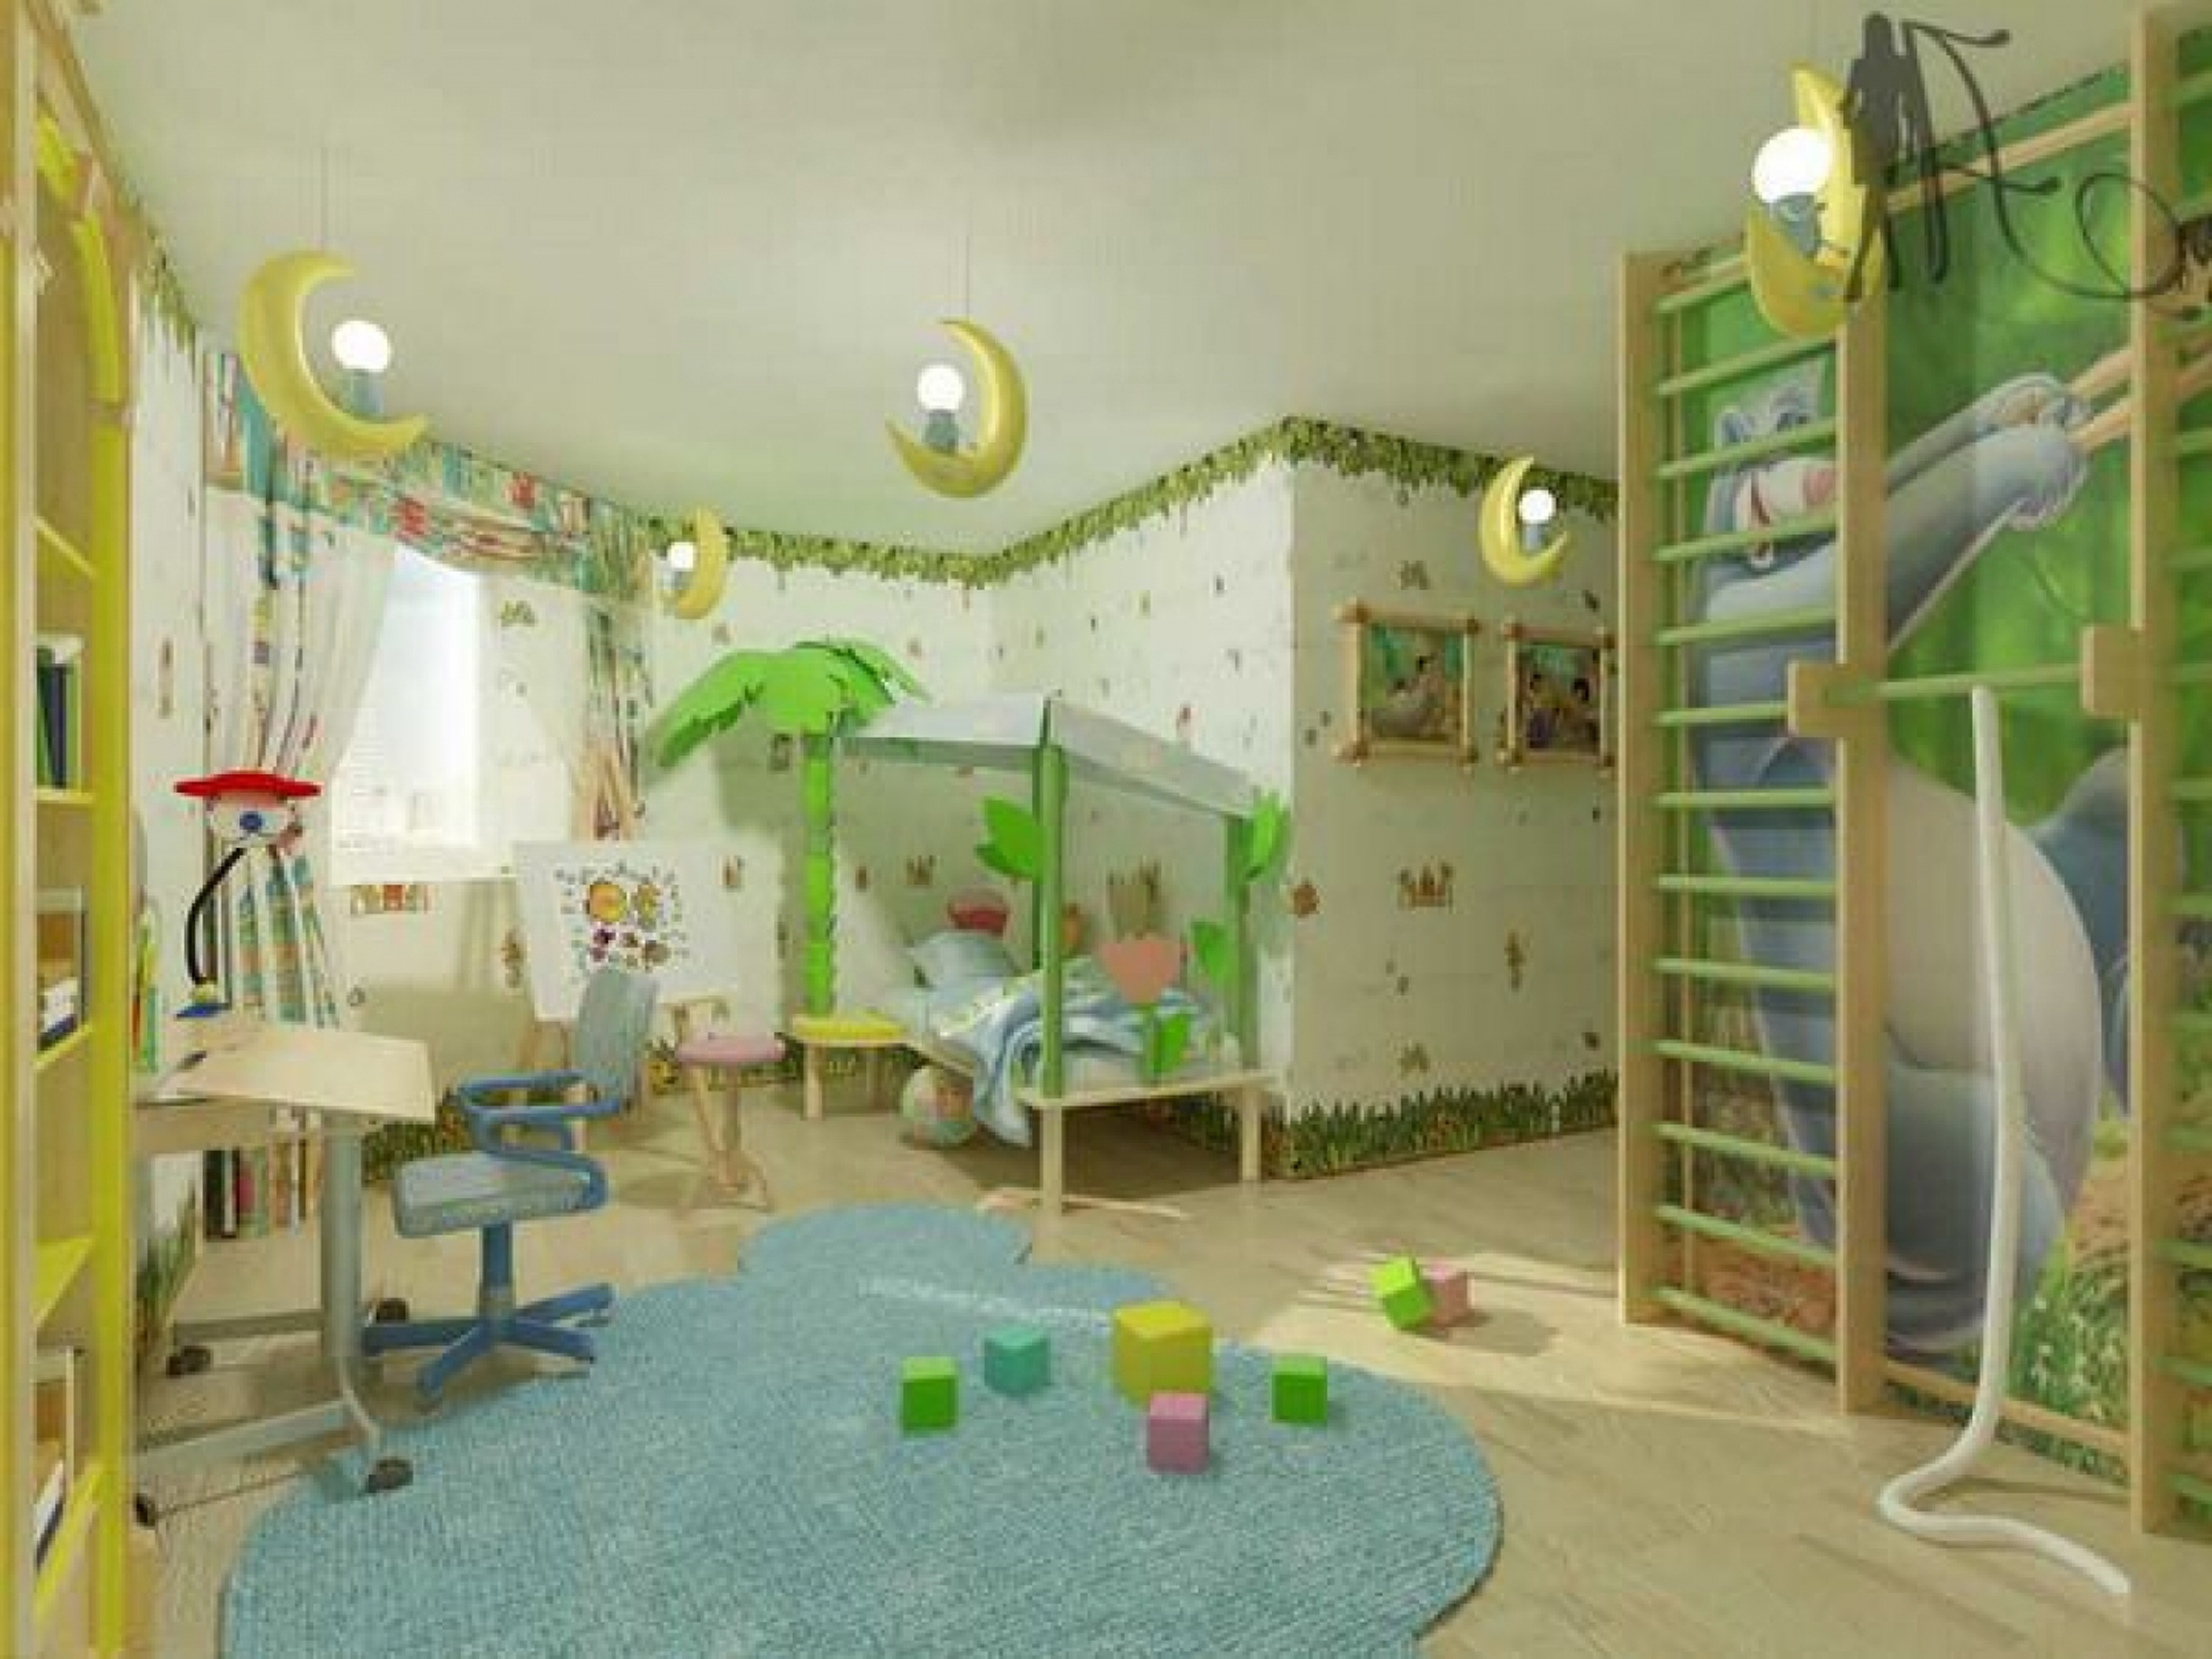 Kids Bedroom Extraordinary Boys Bedroom Decoration Idea With Yellow Moon Pendant Lightscanopy Bed With Green Coconut Tree Light Blue Rug And White Wallpaper Impressive Boys Bedroom D (View 2 of 28)